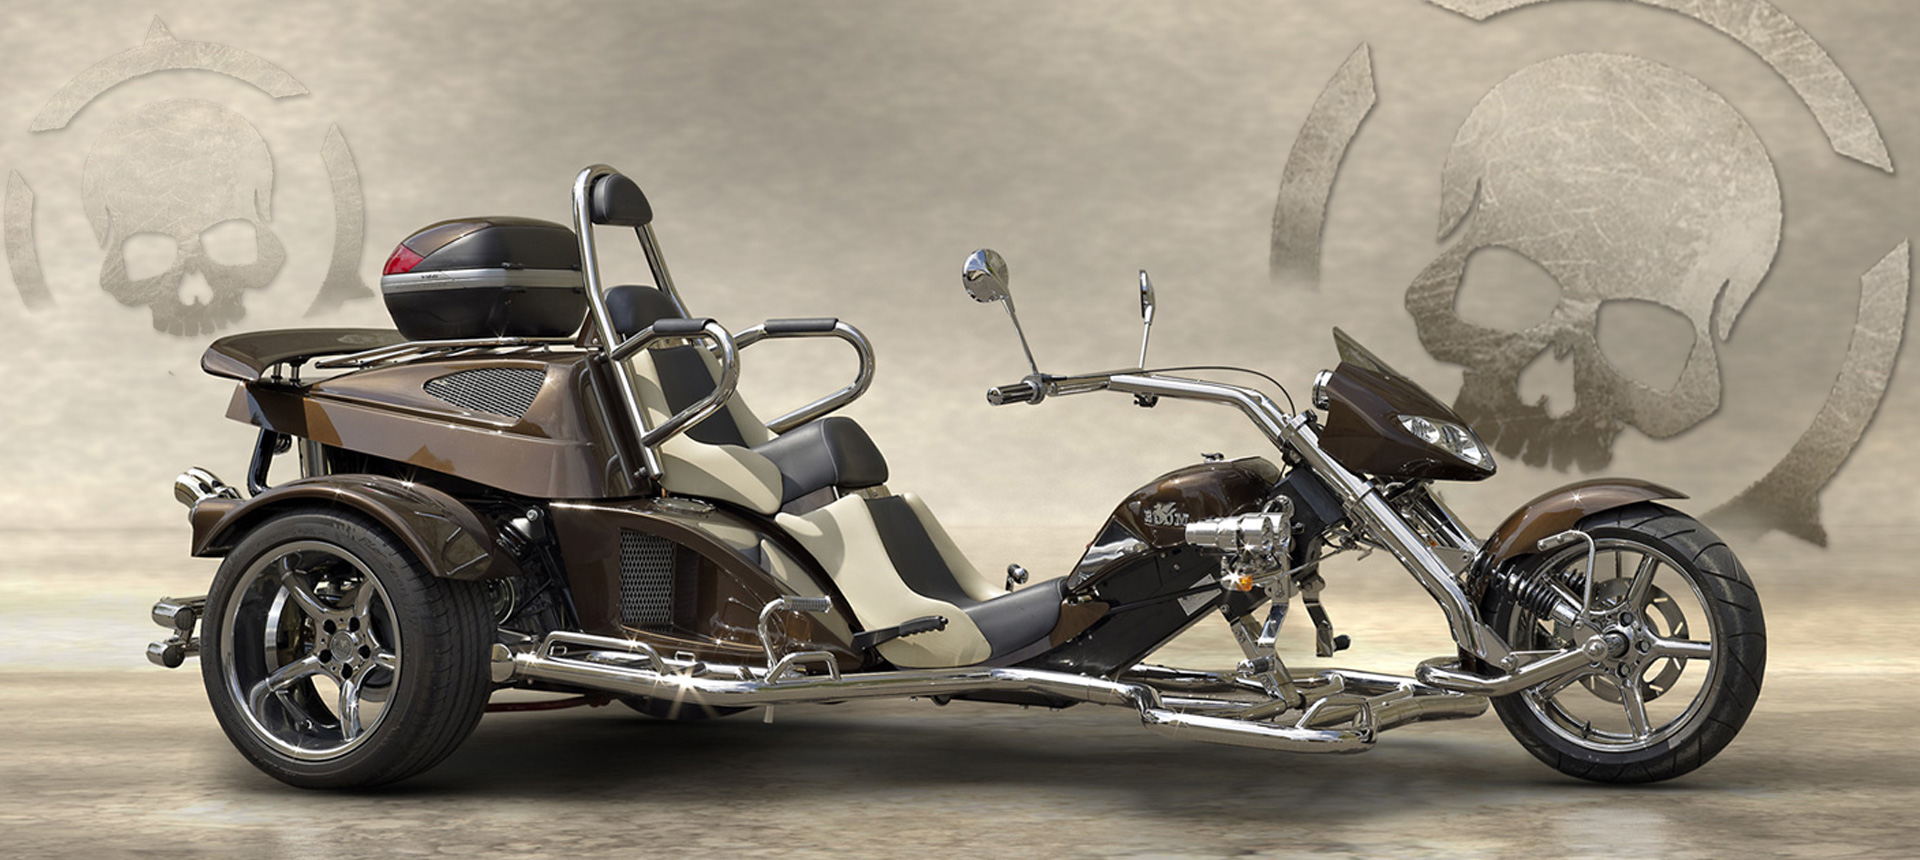 The Trike Guy - The UK's No 1 for New & Used Trikes & Official